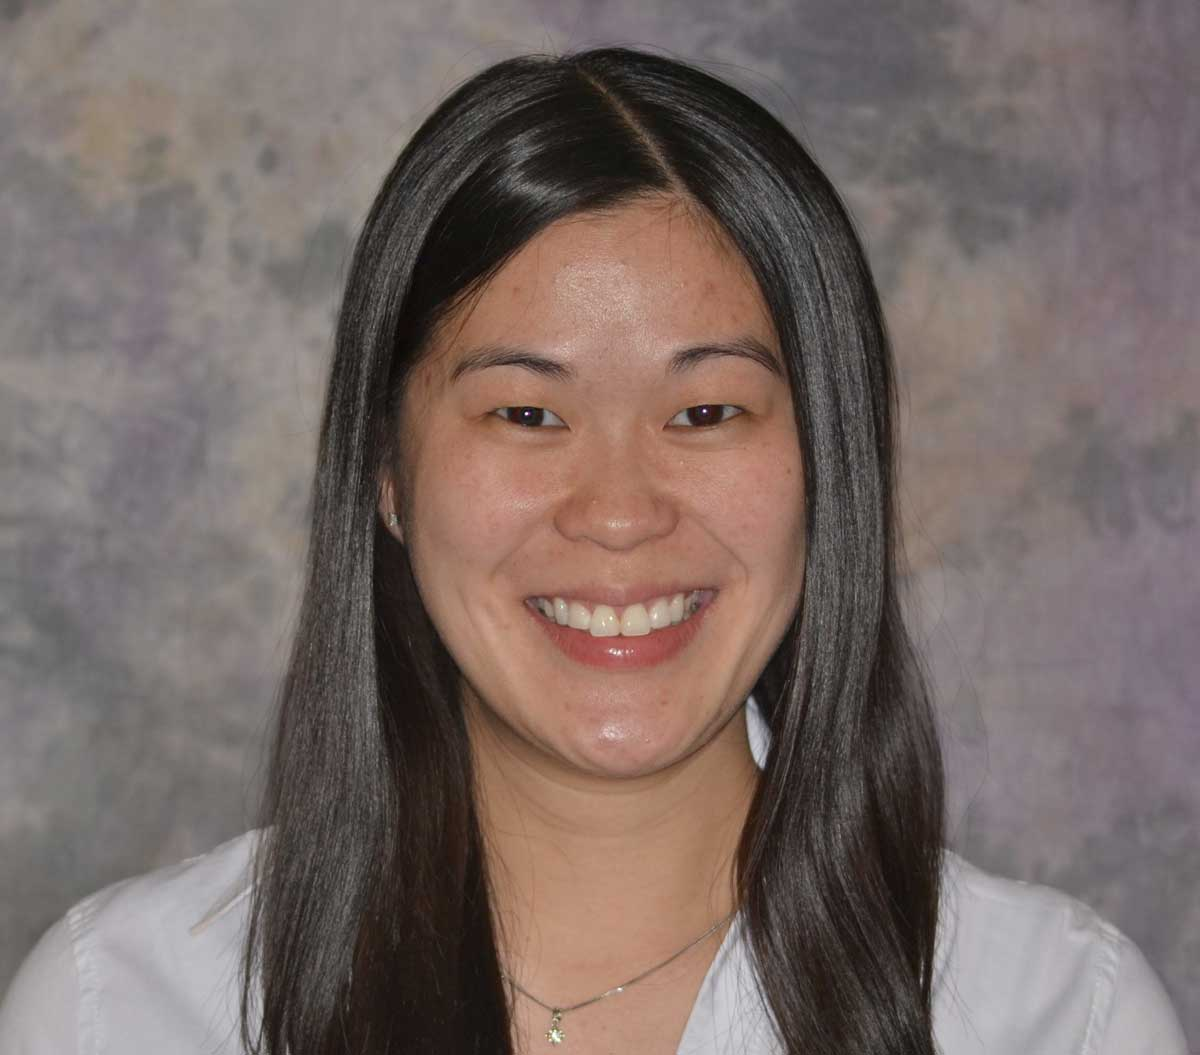 Orthodontist Dr. Jean Hong